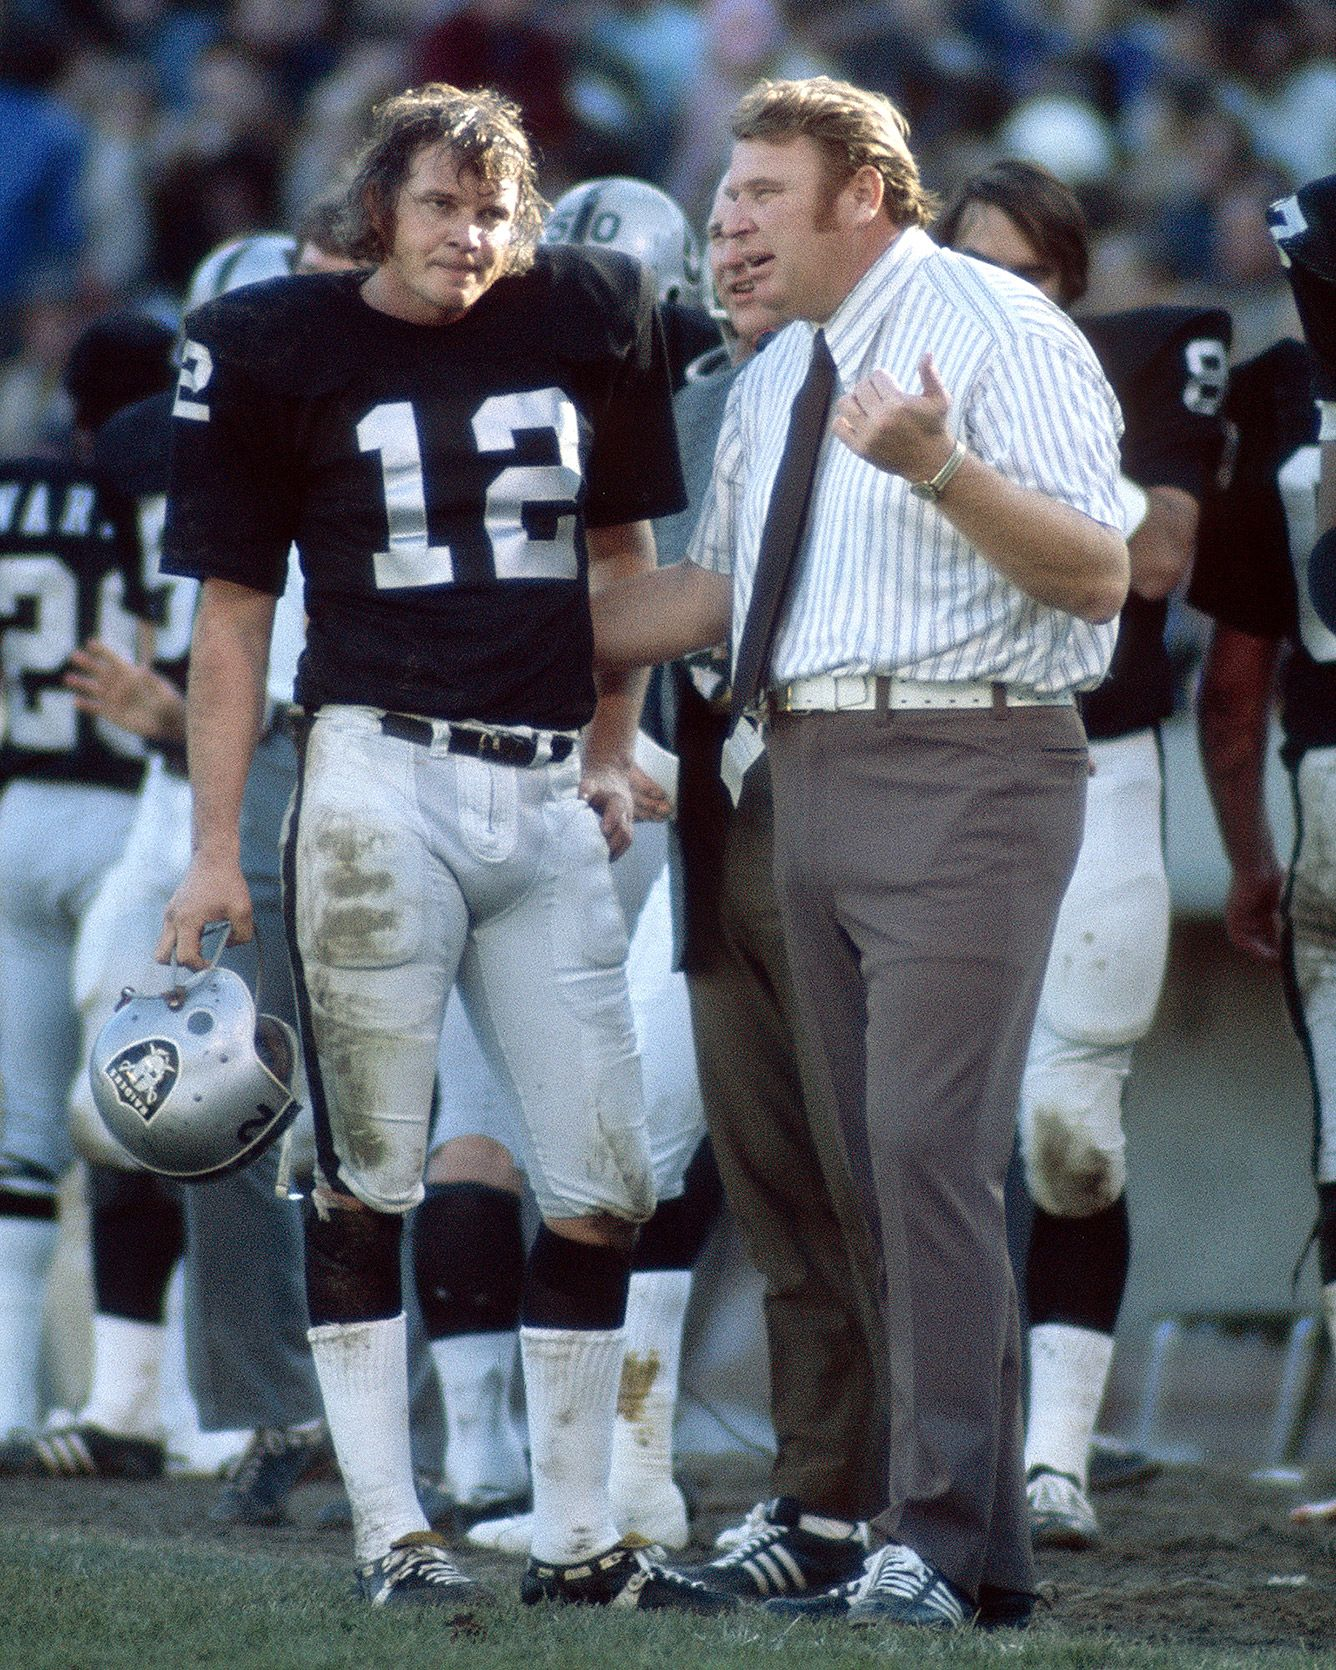 Ken Stabler & John Madden - YES, JOHN MADDEN WAS ONCE A HEAD COACH, AND A PRETTY GOOD ONE TOO!